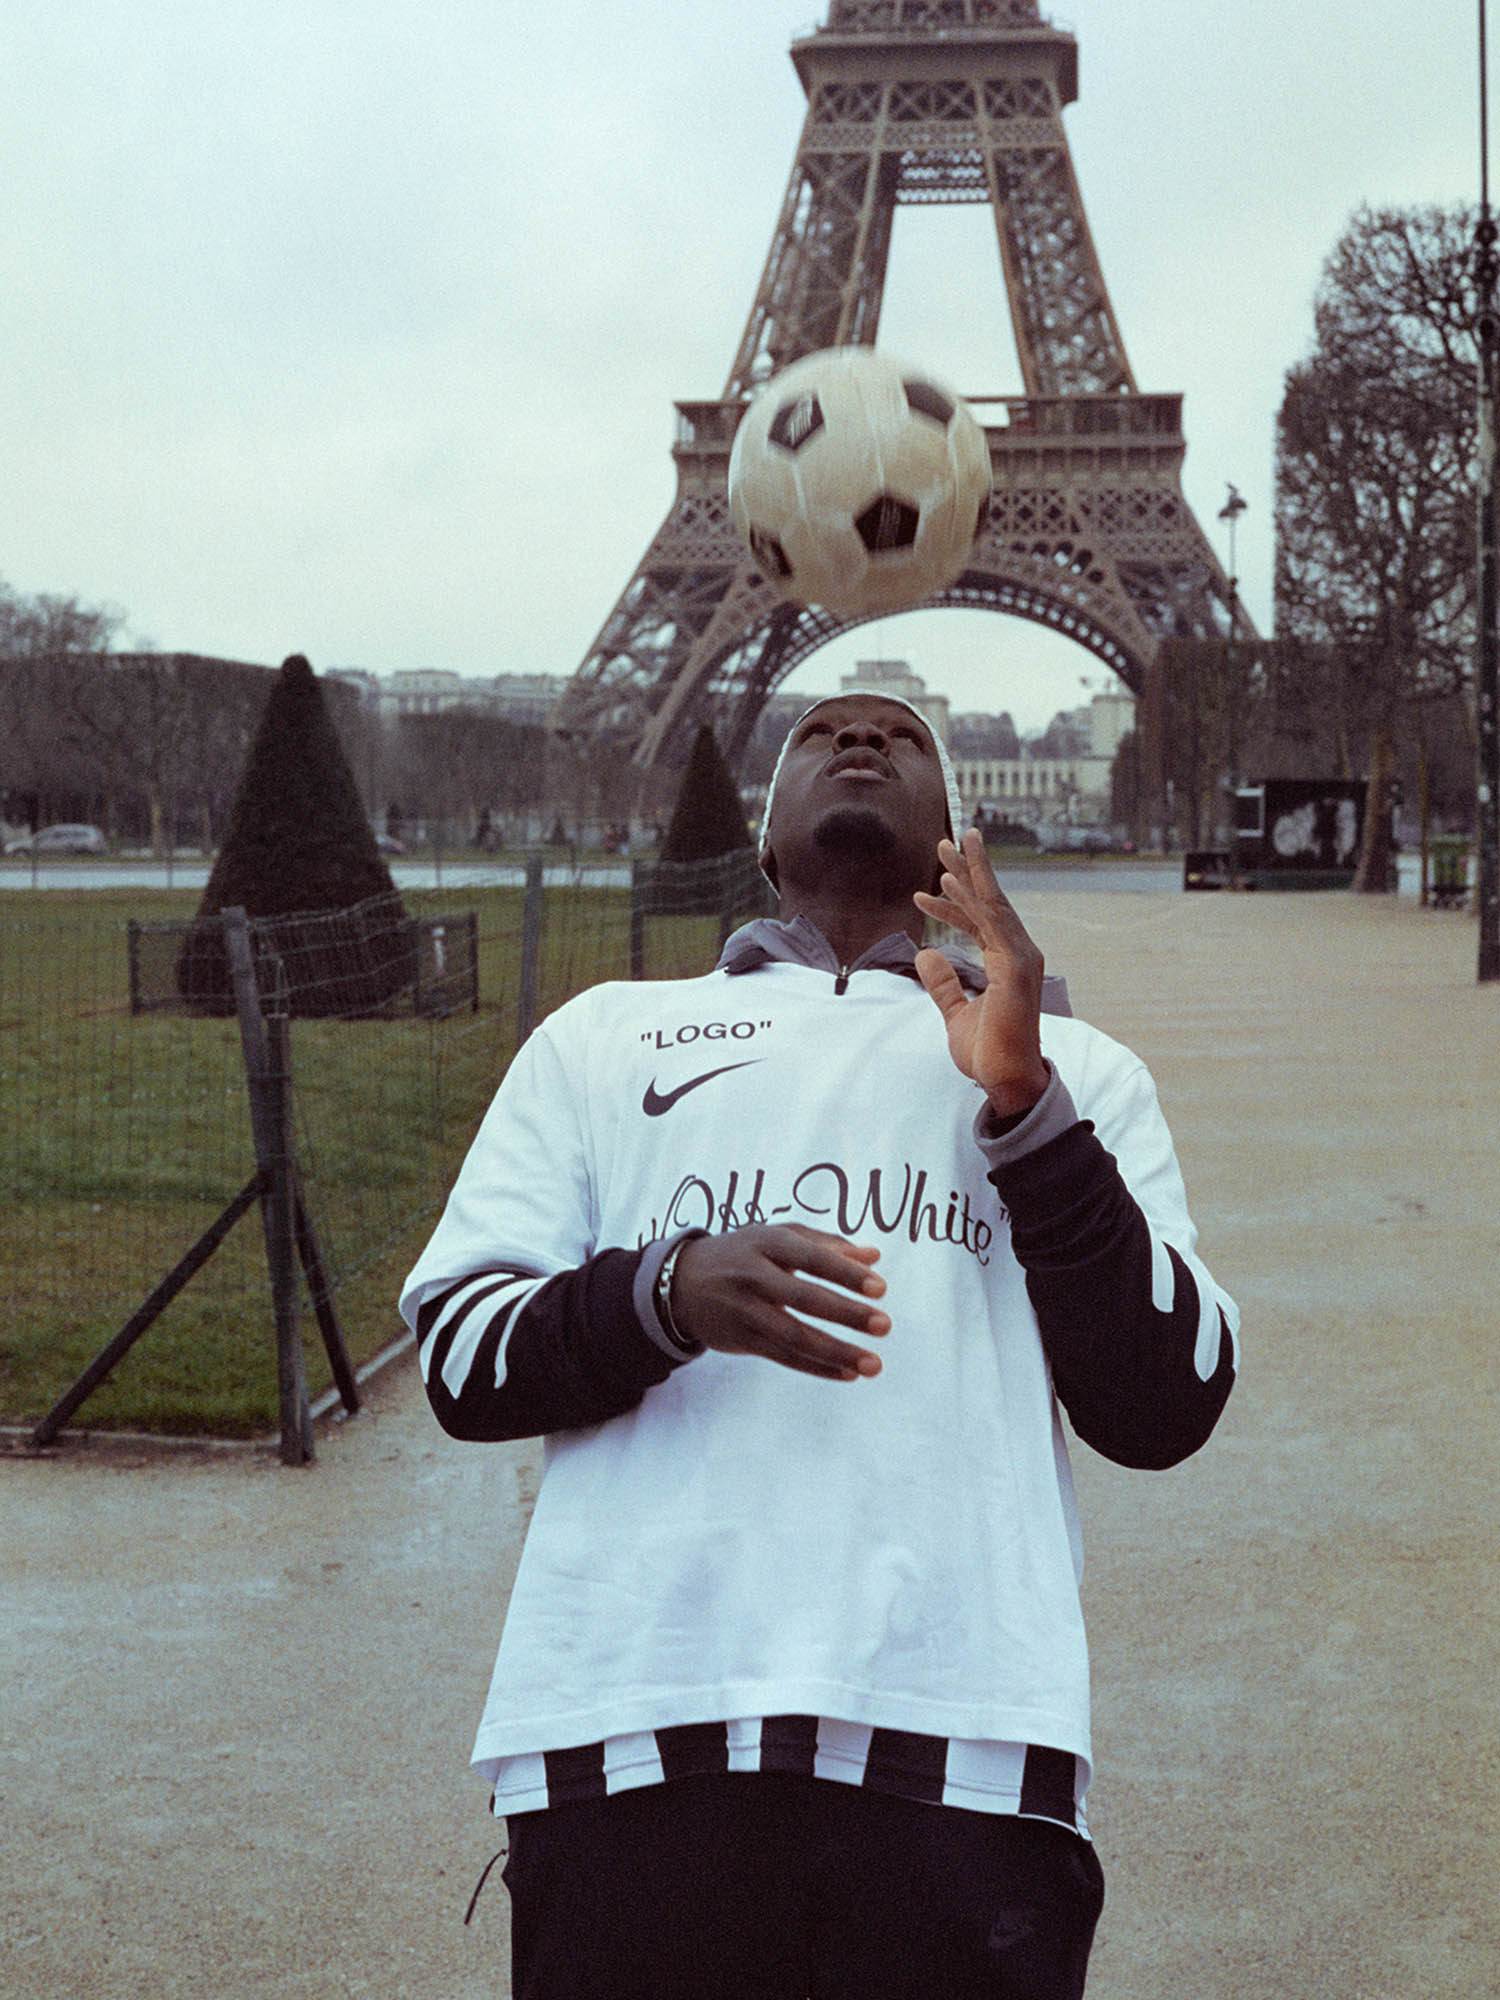 Virgil Abloh Off White Nike Soccerbible_0000__SU18_IM_Virgil_OW_MonAmour__Football_22_79886_79939.jpg